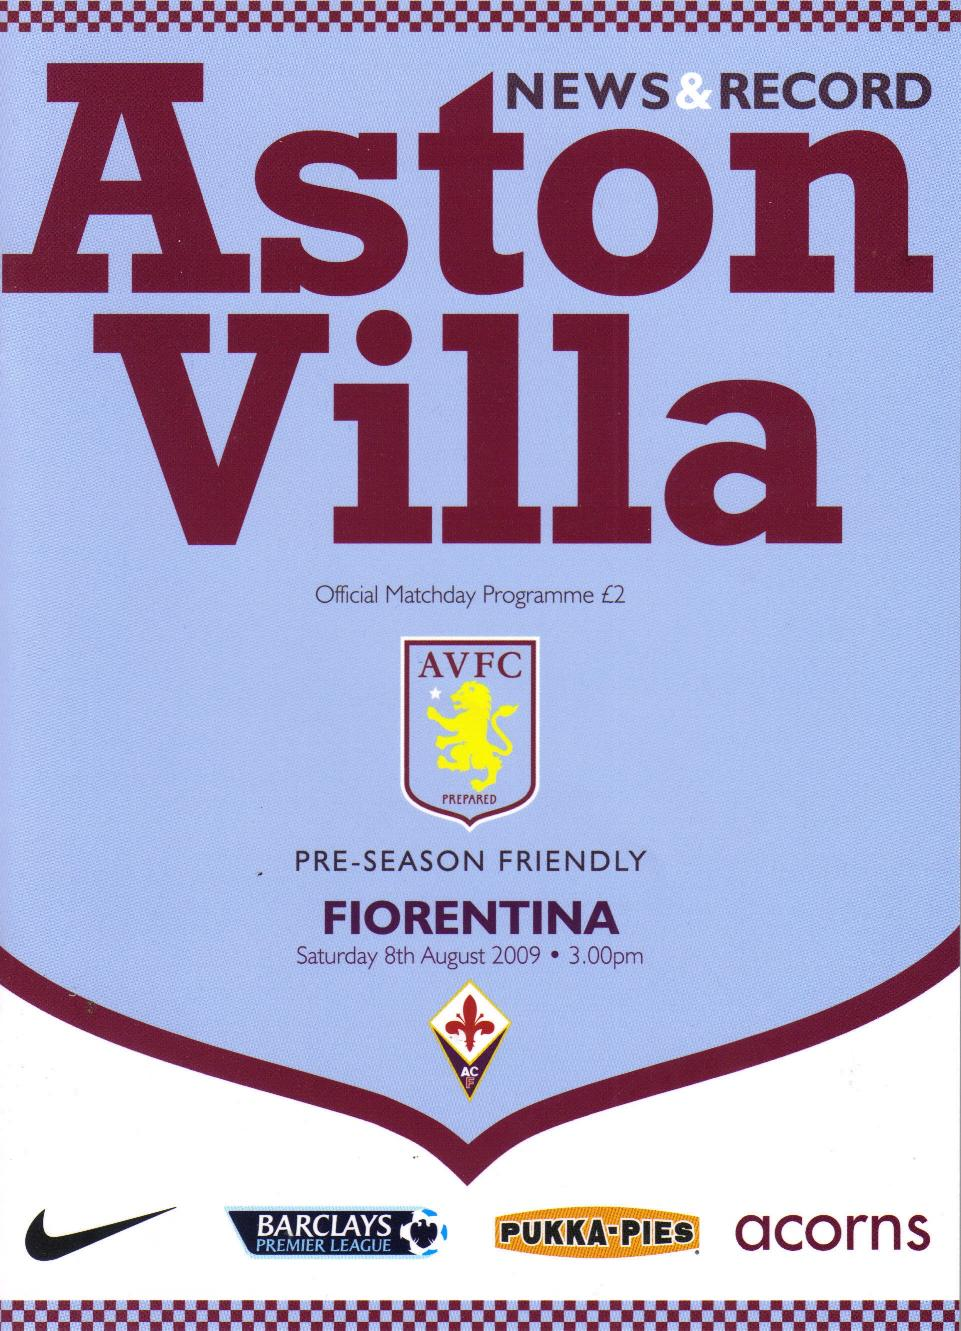 ASTON VILLA v FIORENTINA 2009/10 (FRIENDLY)